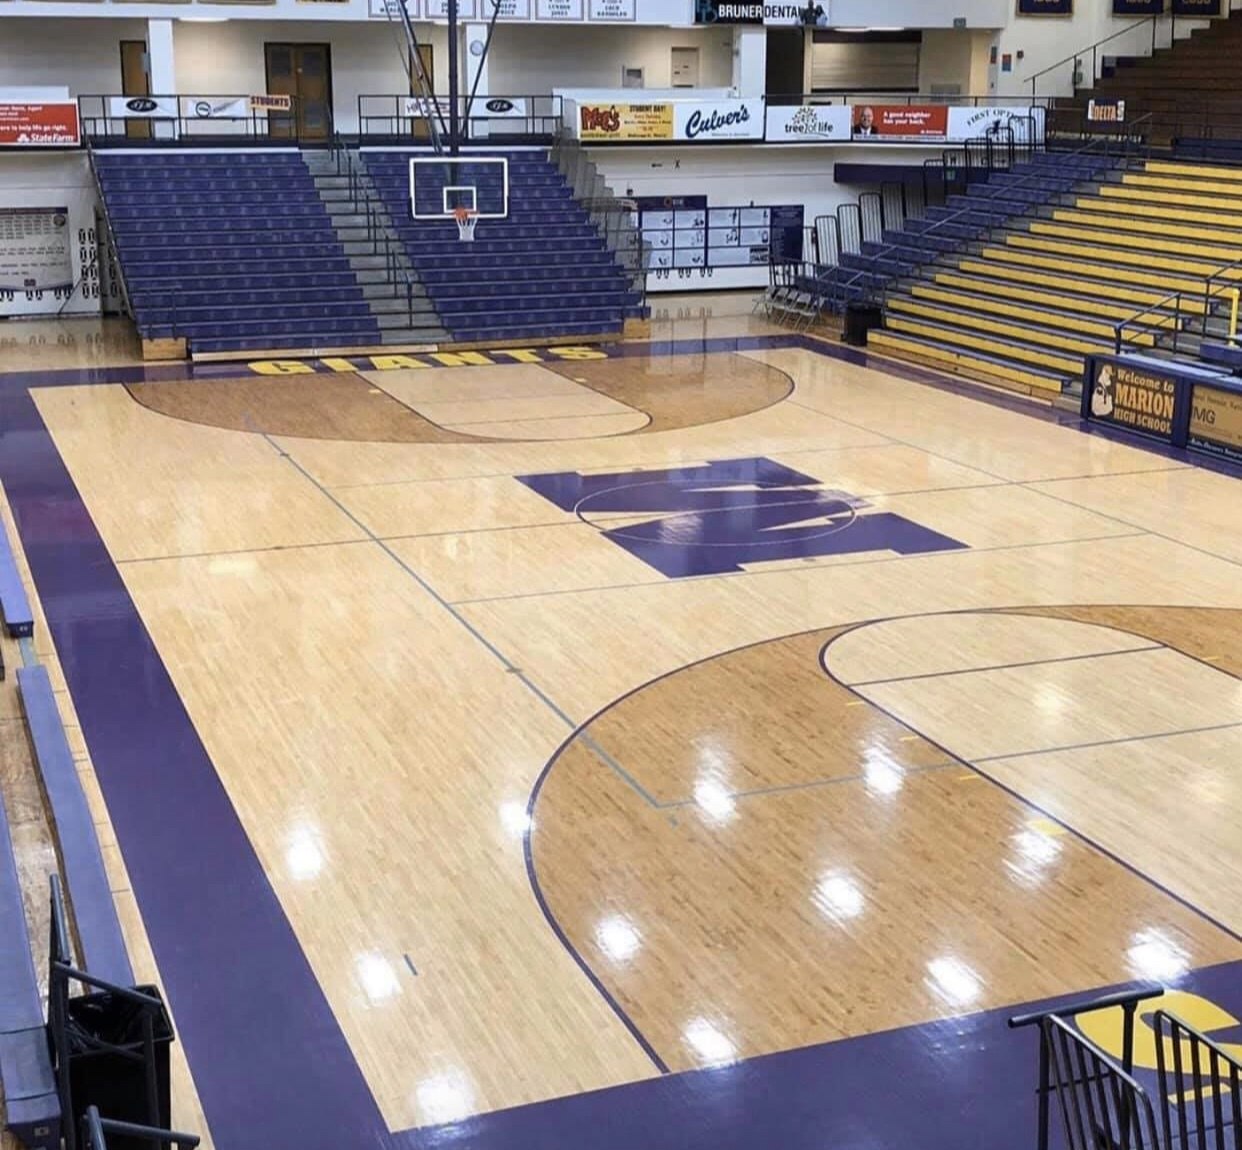 The Marion Basketball Classic is tomorrow (January 4)